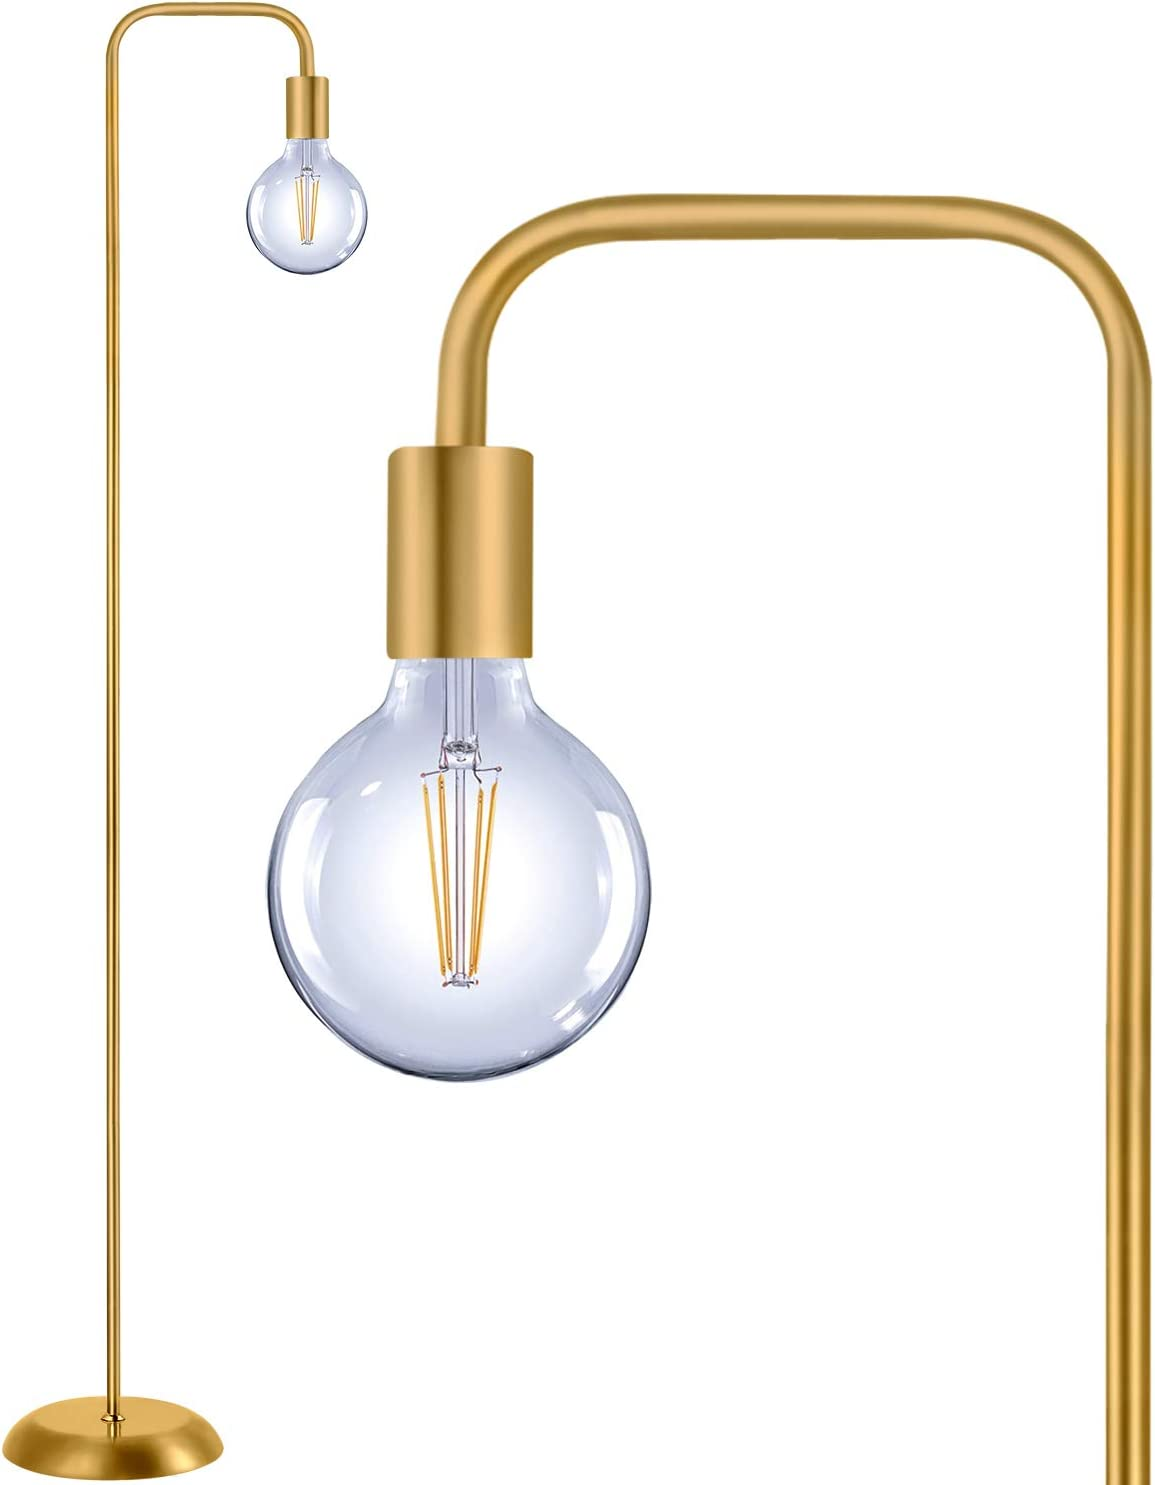 QiMH Industrial Floor Lamp for Living Room,Industrial Tall Standing Lamp with Light Bulb,100% Metal Modern Gold Led Floor Lamp for Home Decor,Bedroom,Reading,Office(E26 Socket,Foot Switch)